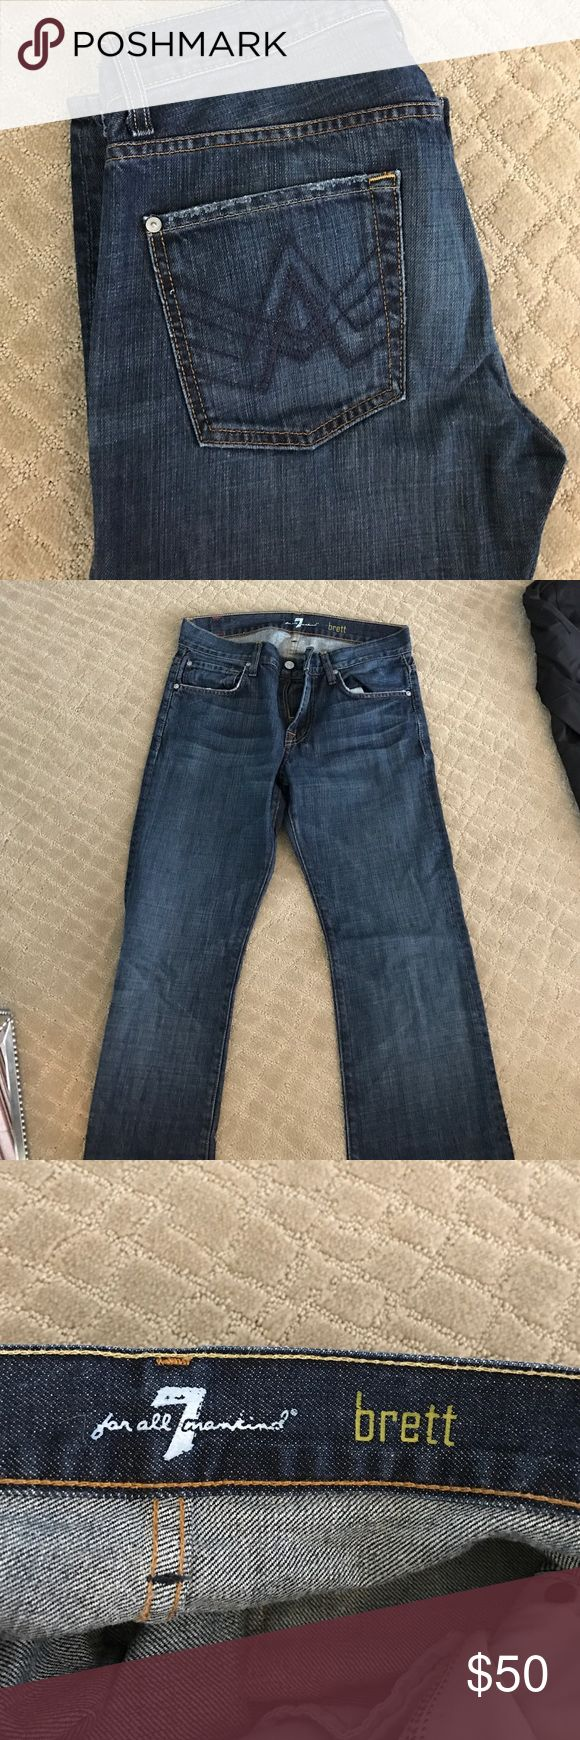 7 for all mankind men's bootcut jeans 7 for all mankind, style Brett, size 30 waist.  Bootcut fit, A pockets.  In excellent condition 7 For All Mankind Jeans Bootcut